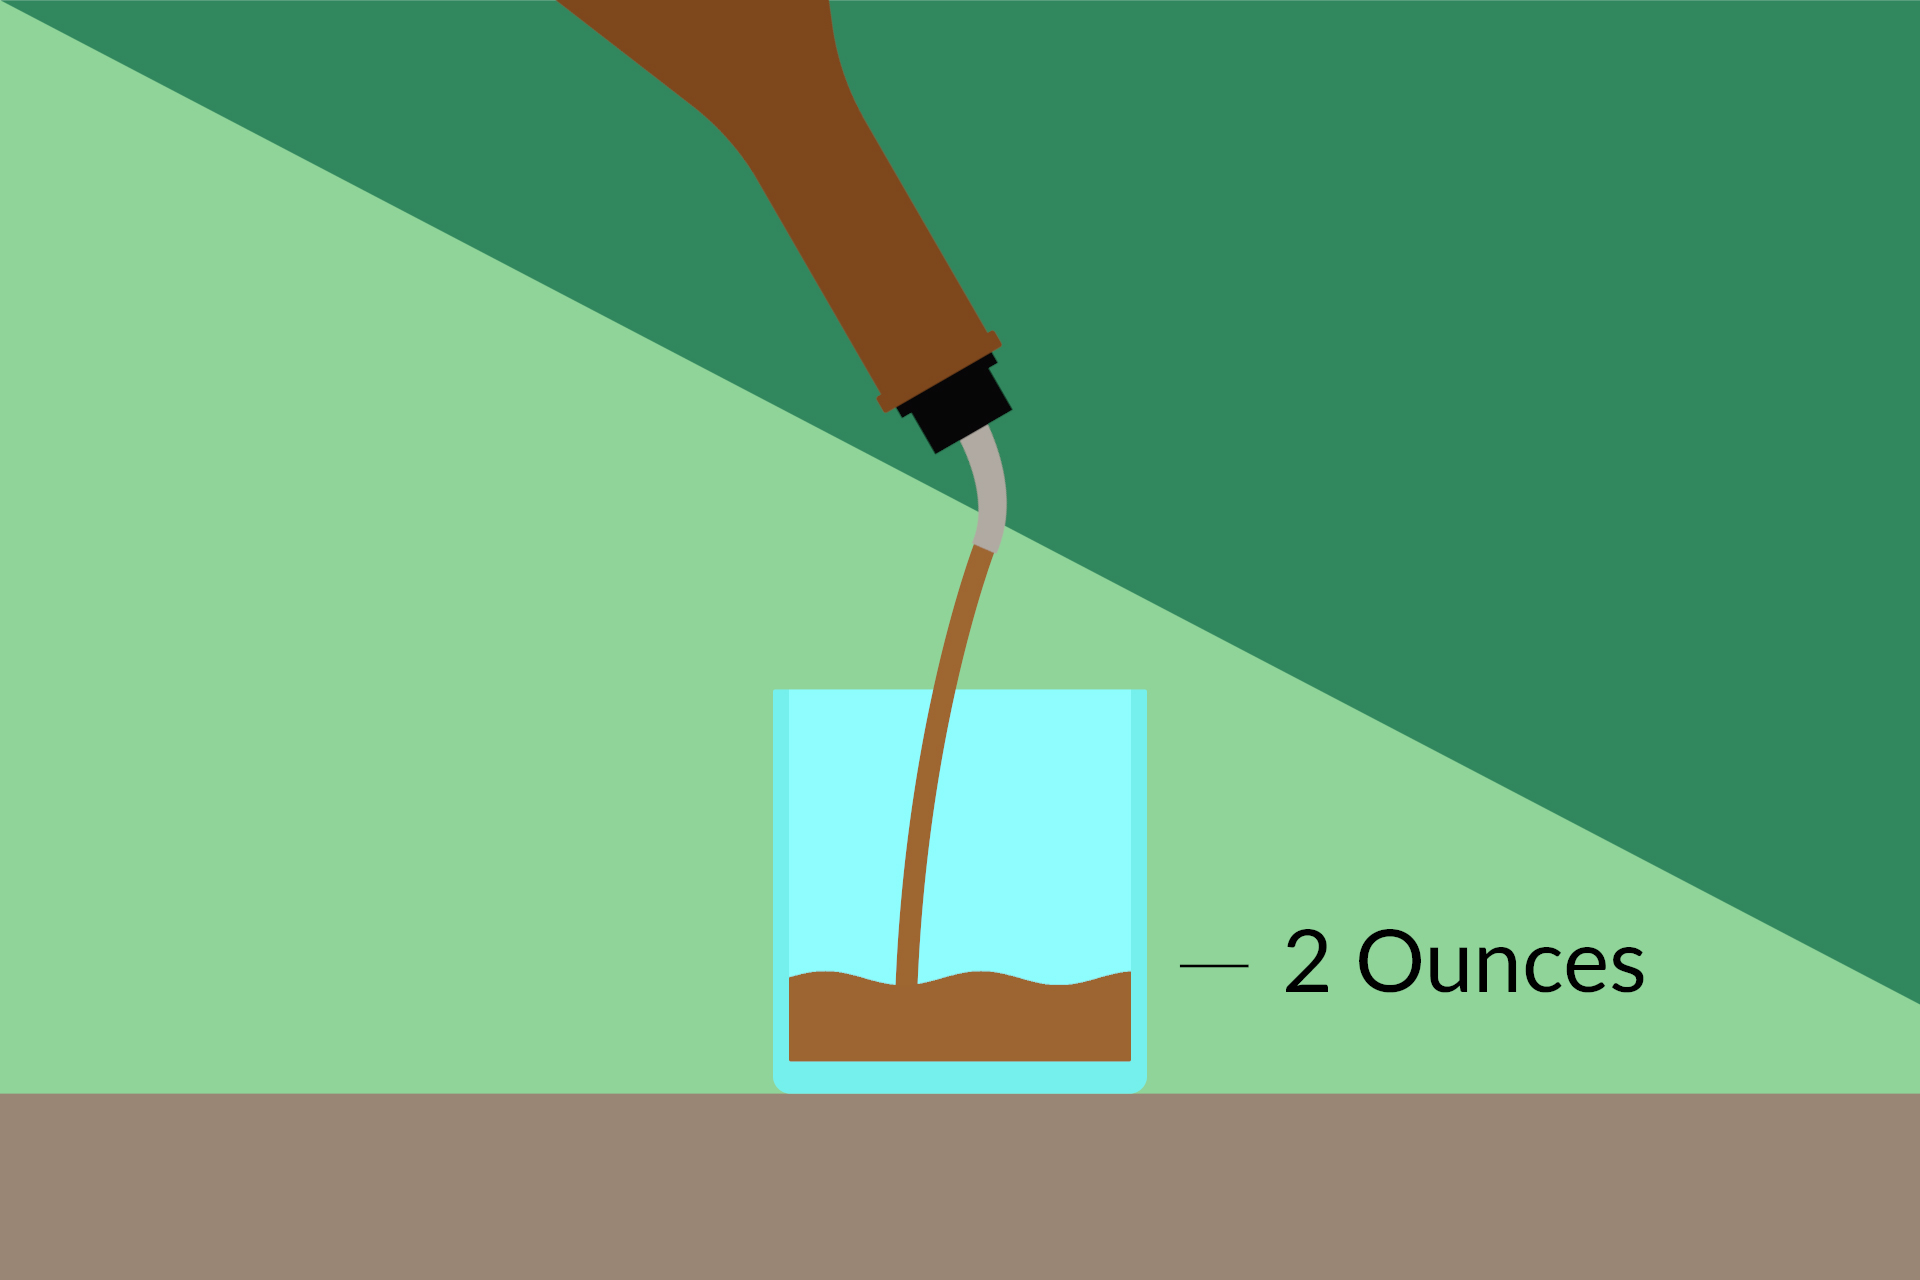 Illustration of two ounces of liquor being poured from a bottle with a speed pourer